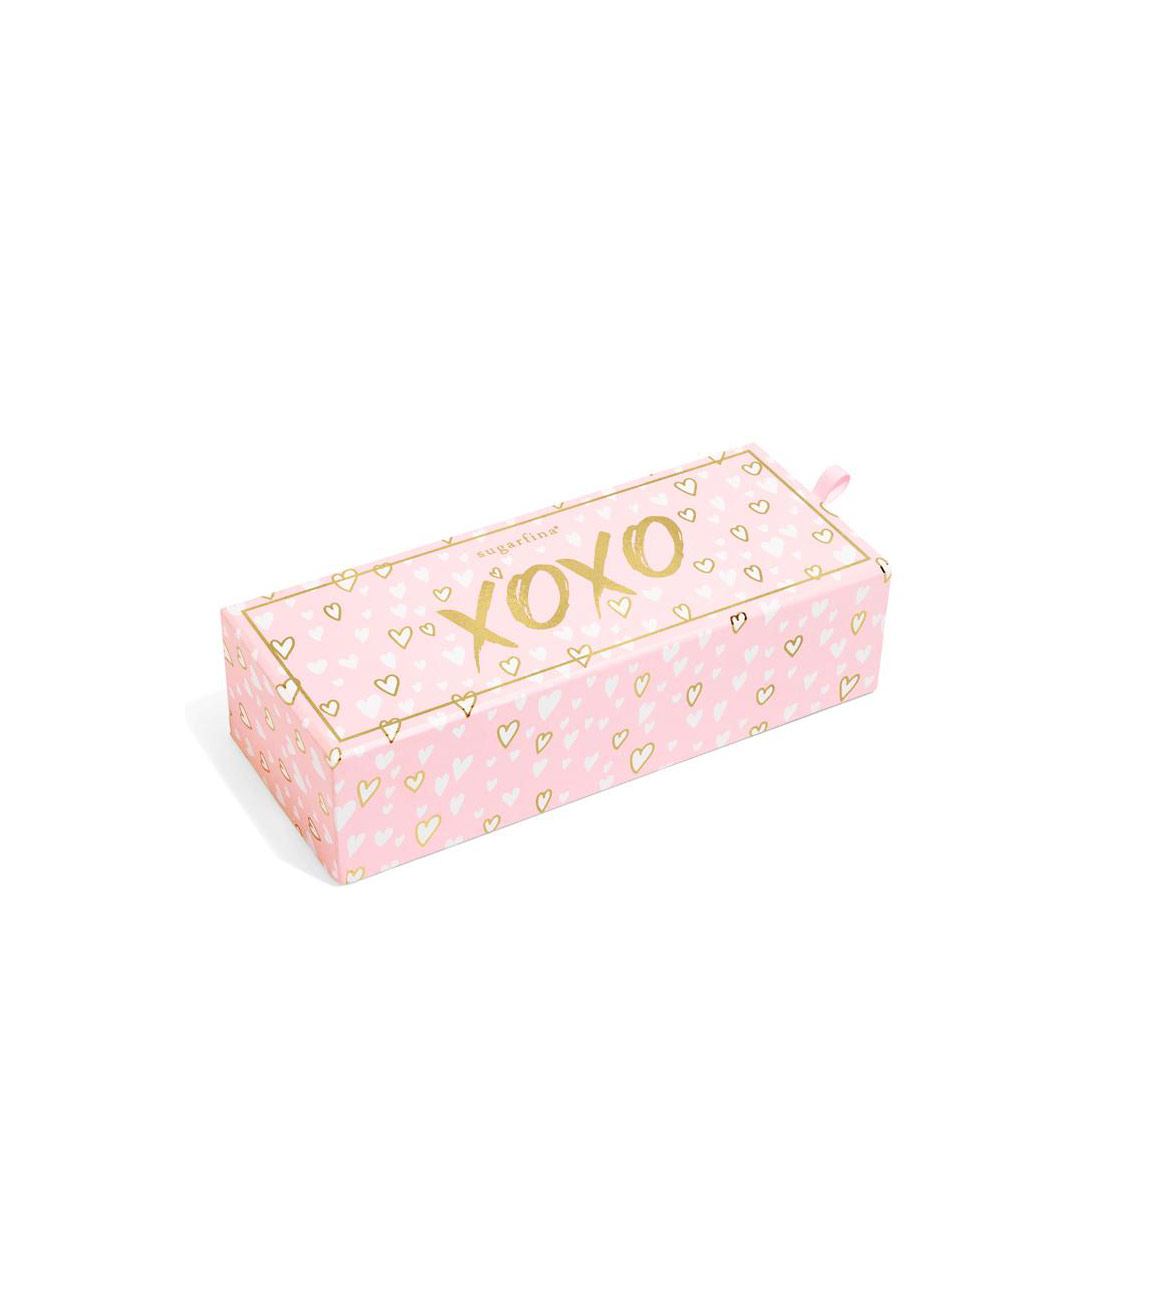 Design Your Own XOXO Bento Box